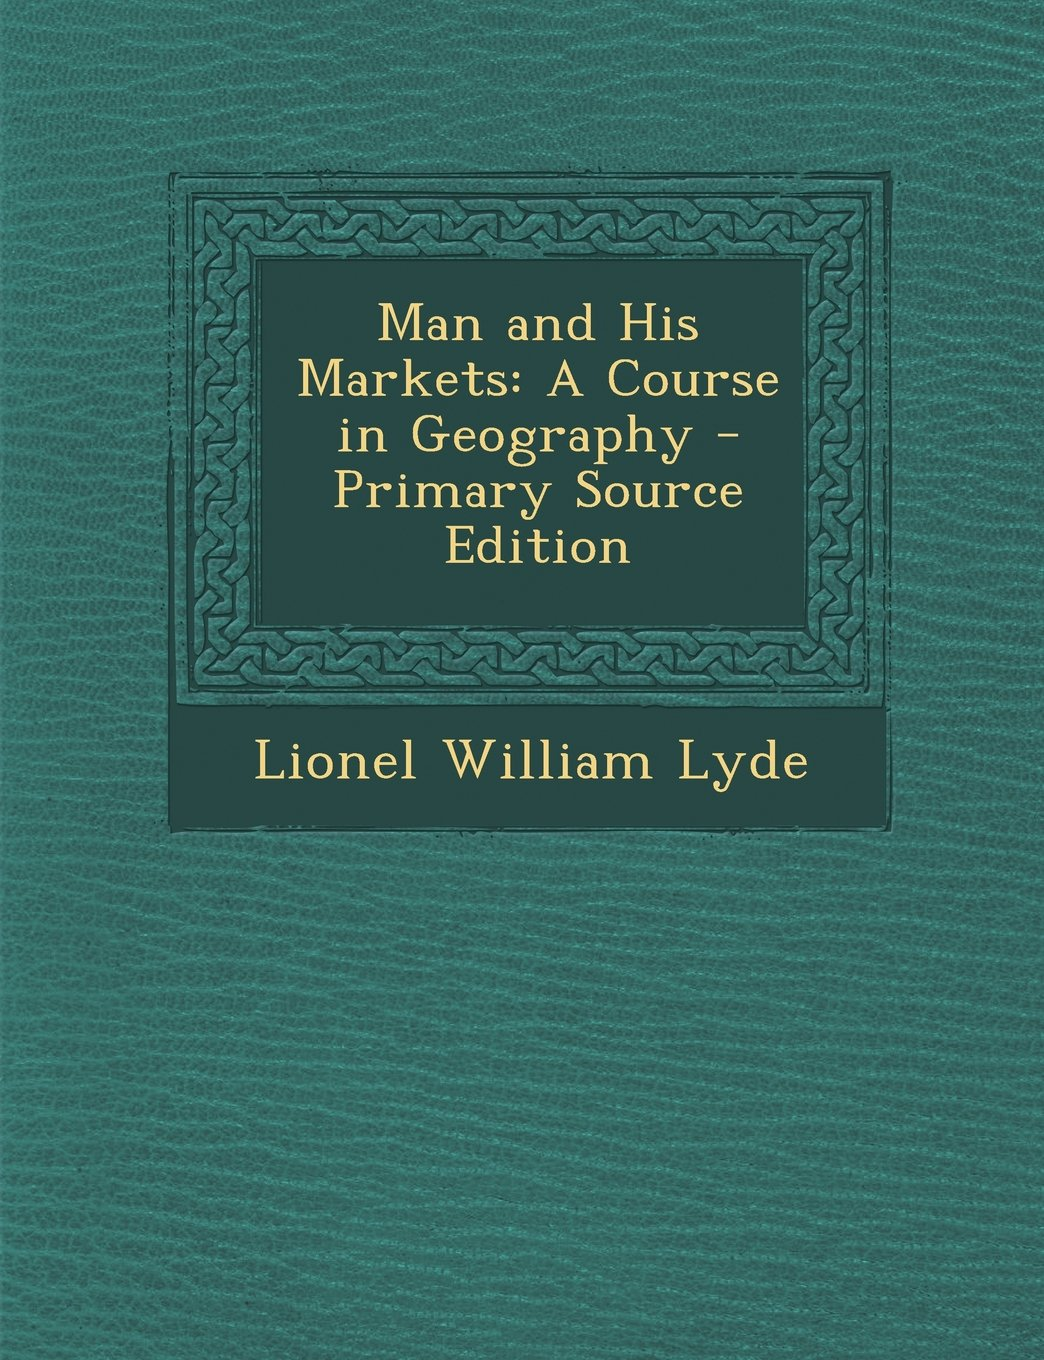 Man and His Markets: A Course in Geography PDF